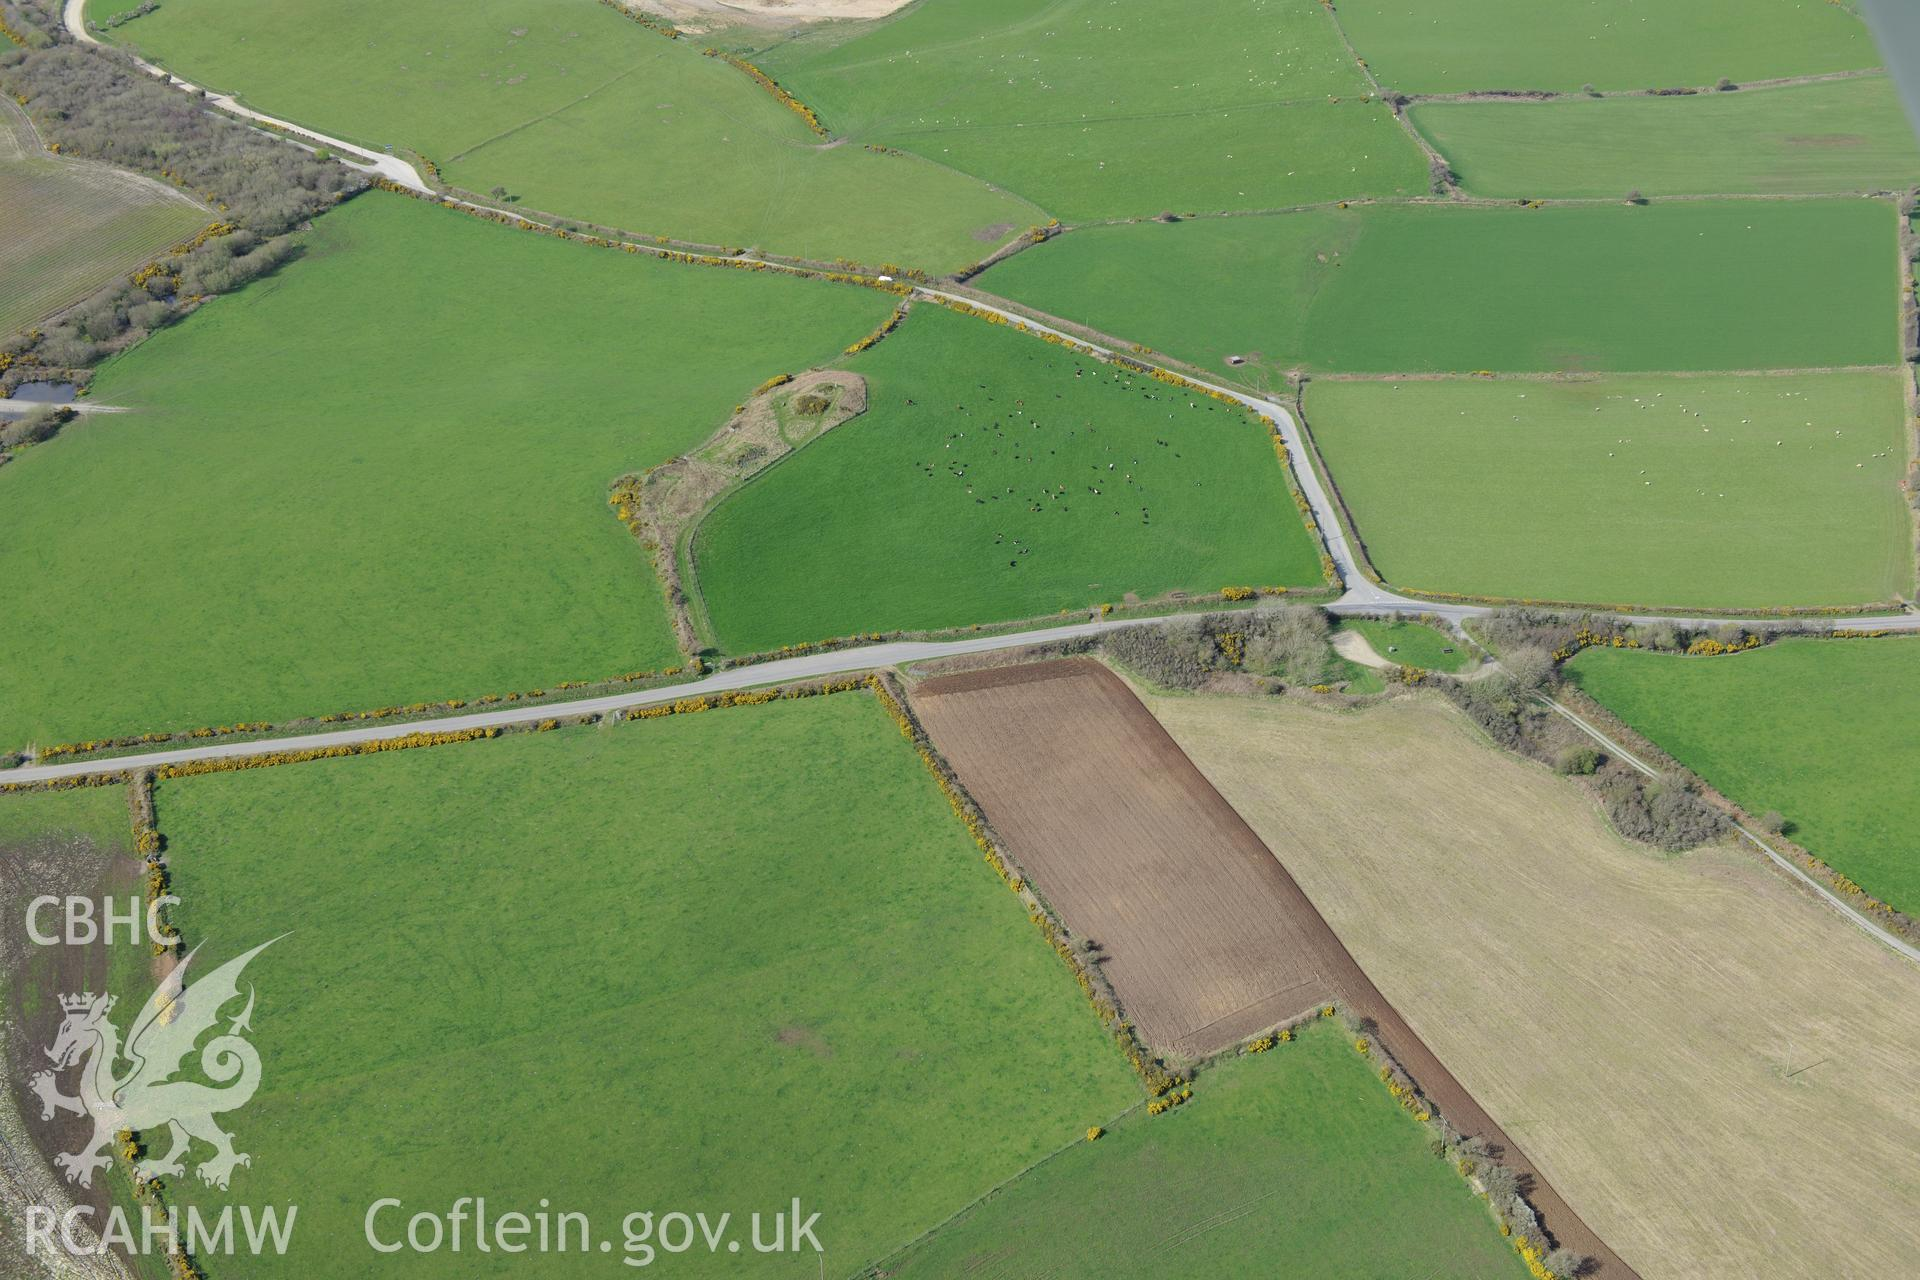 Crugiau Cemmaes Barrow I and II. Oblique aerial photograph taken during the Royal Commission's programme of archaeological aerial reconnaissance by Toby Driver on 15th April 2015.